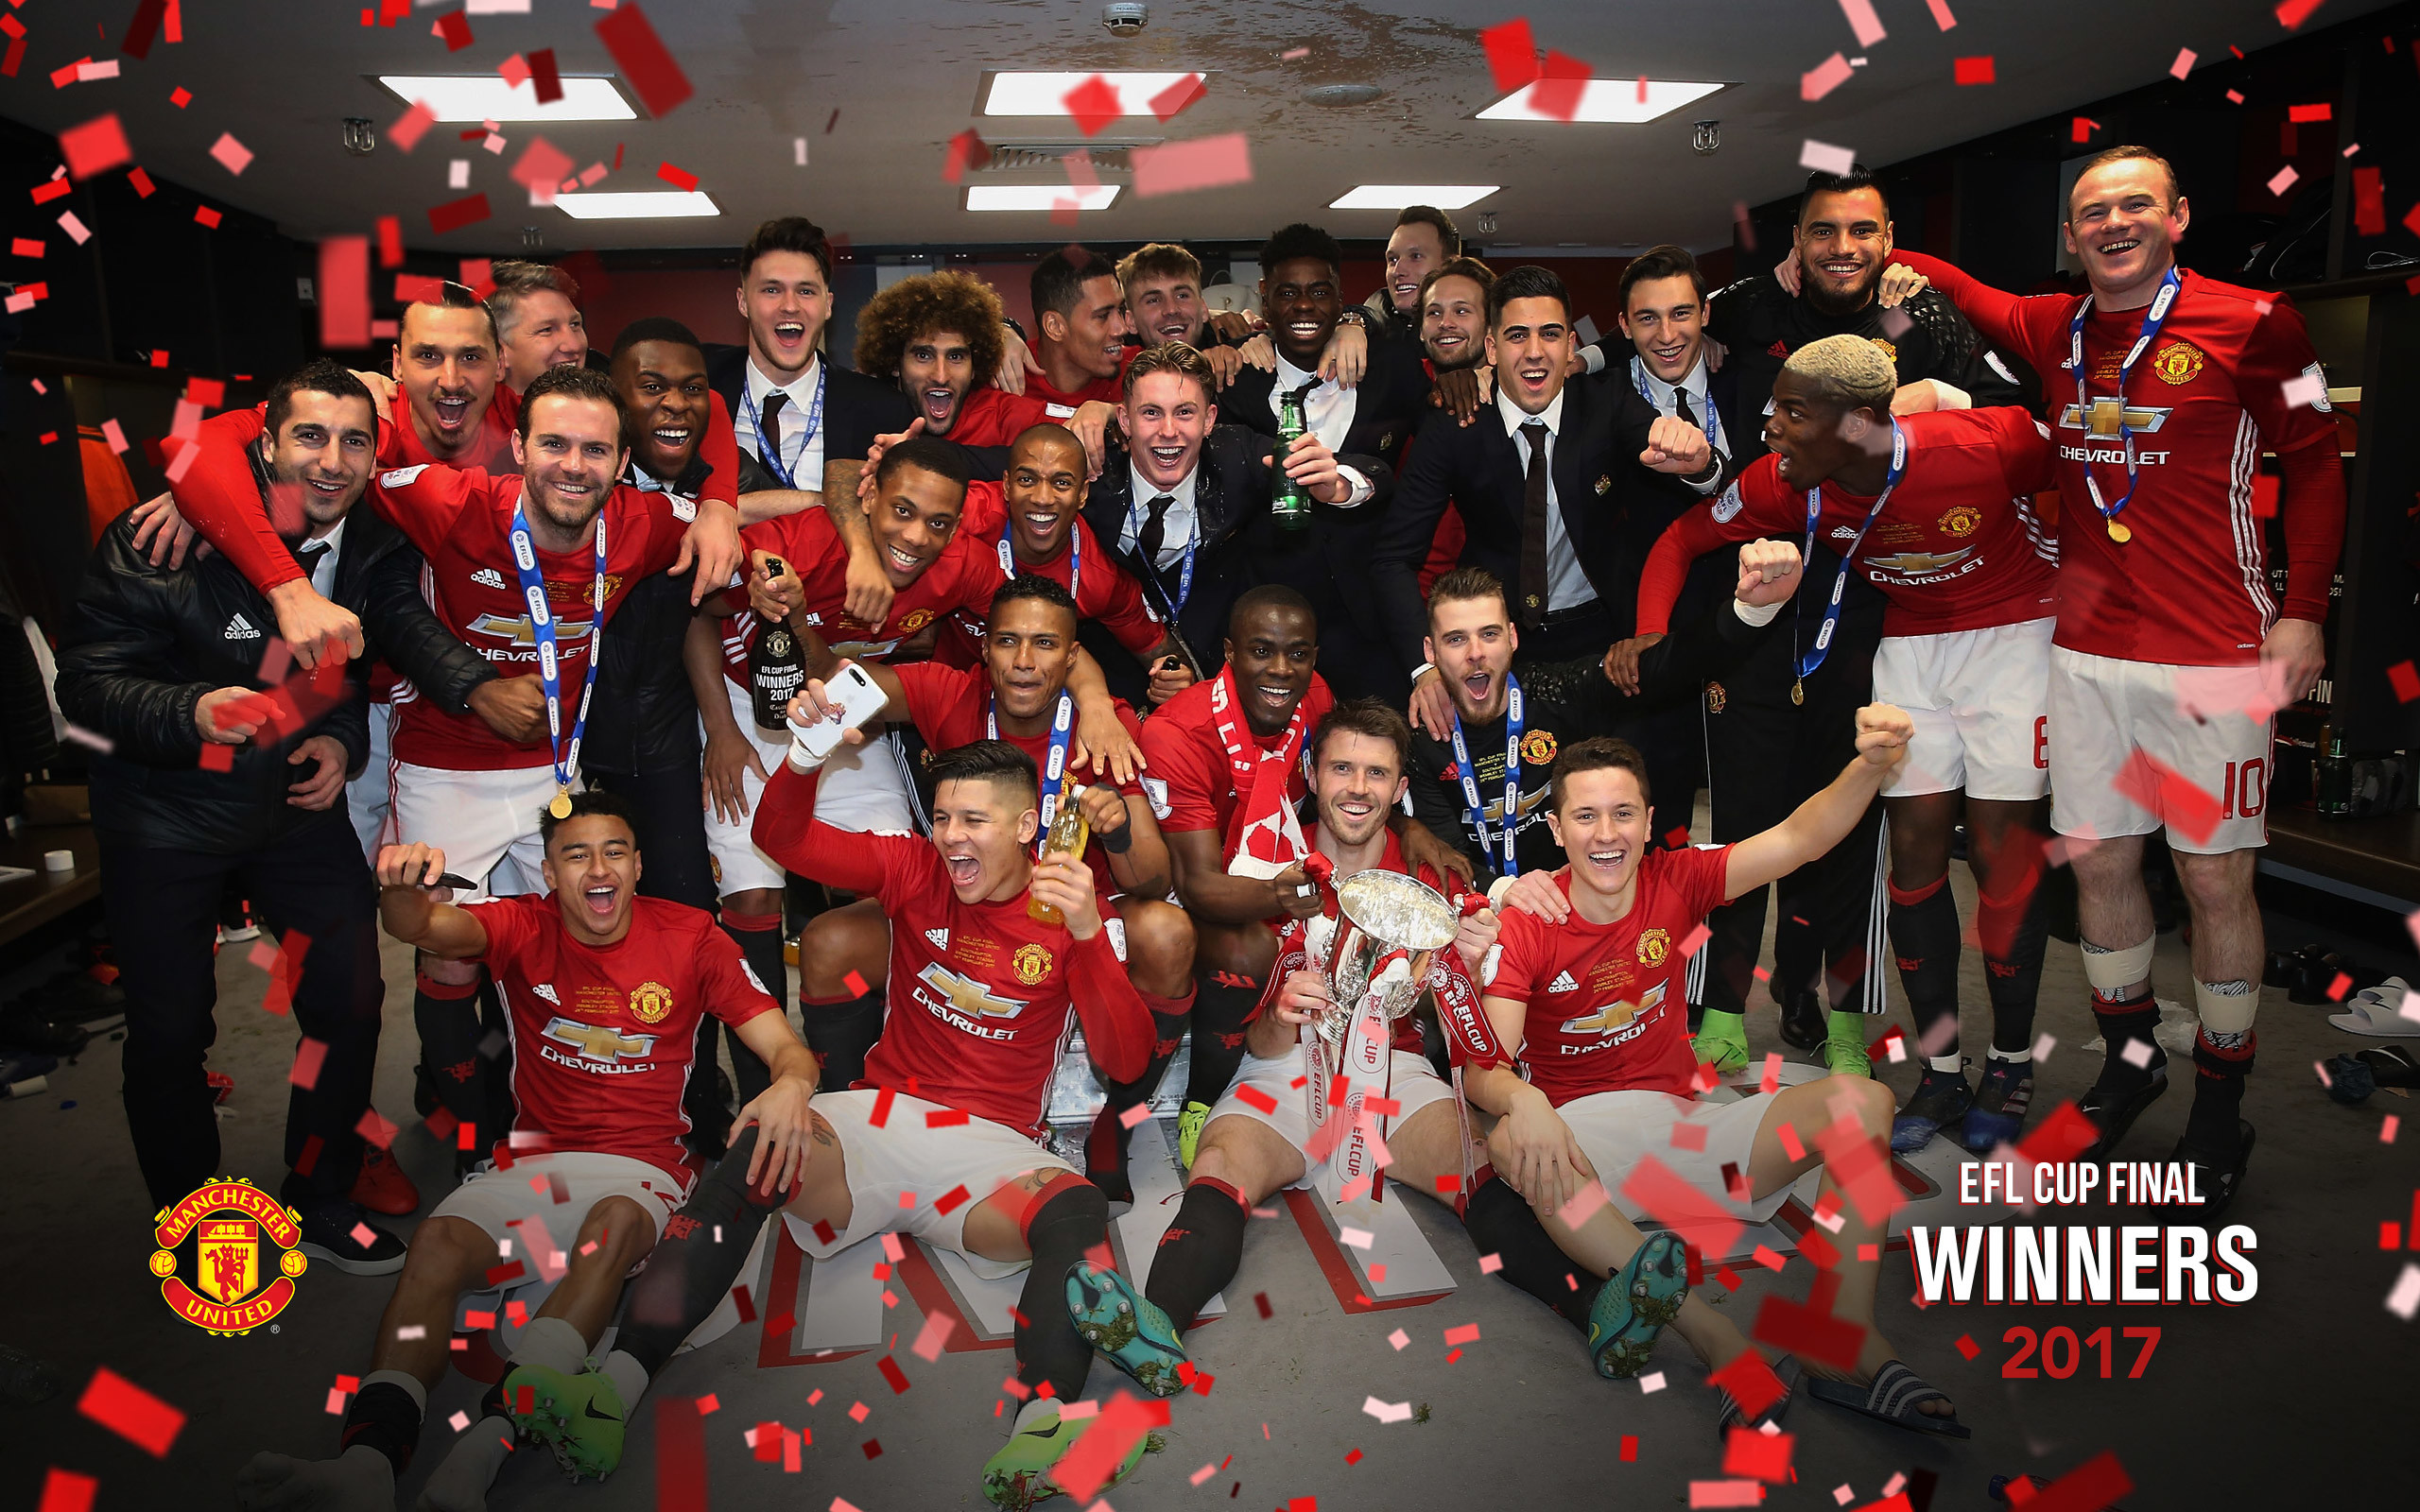 Manchester United Wallpaper HD 2018 67 images 2560x1600